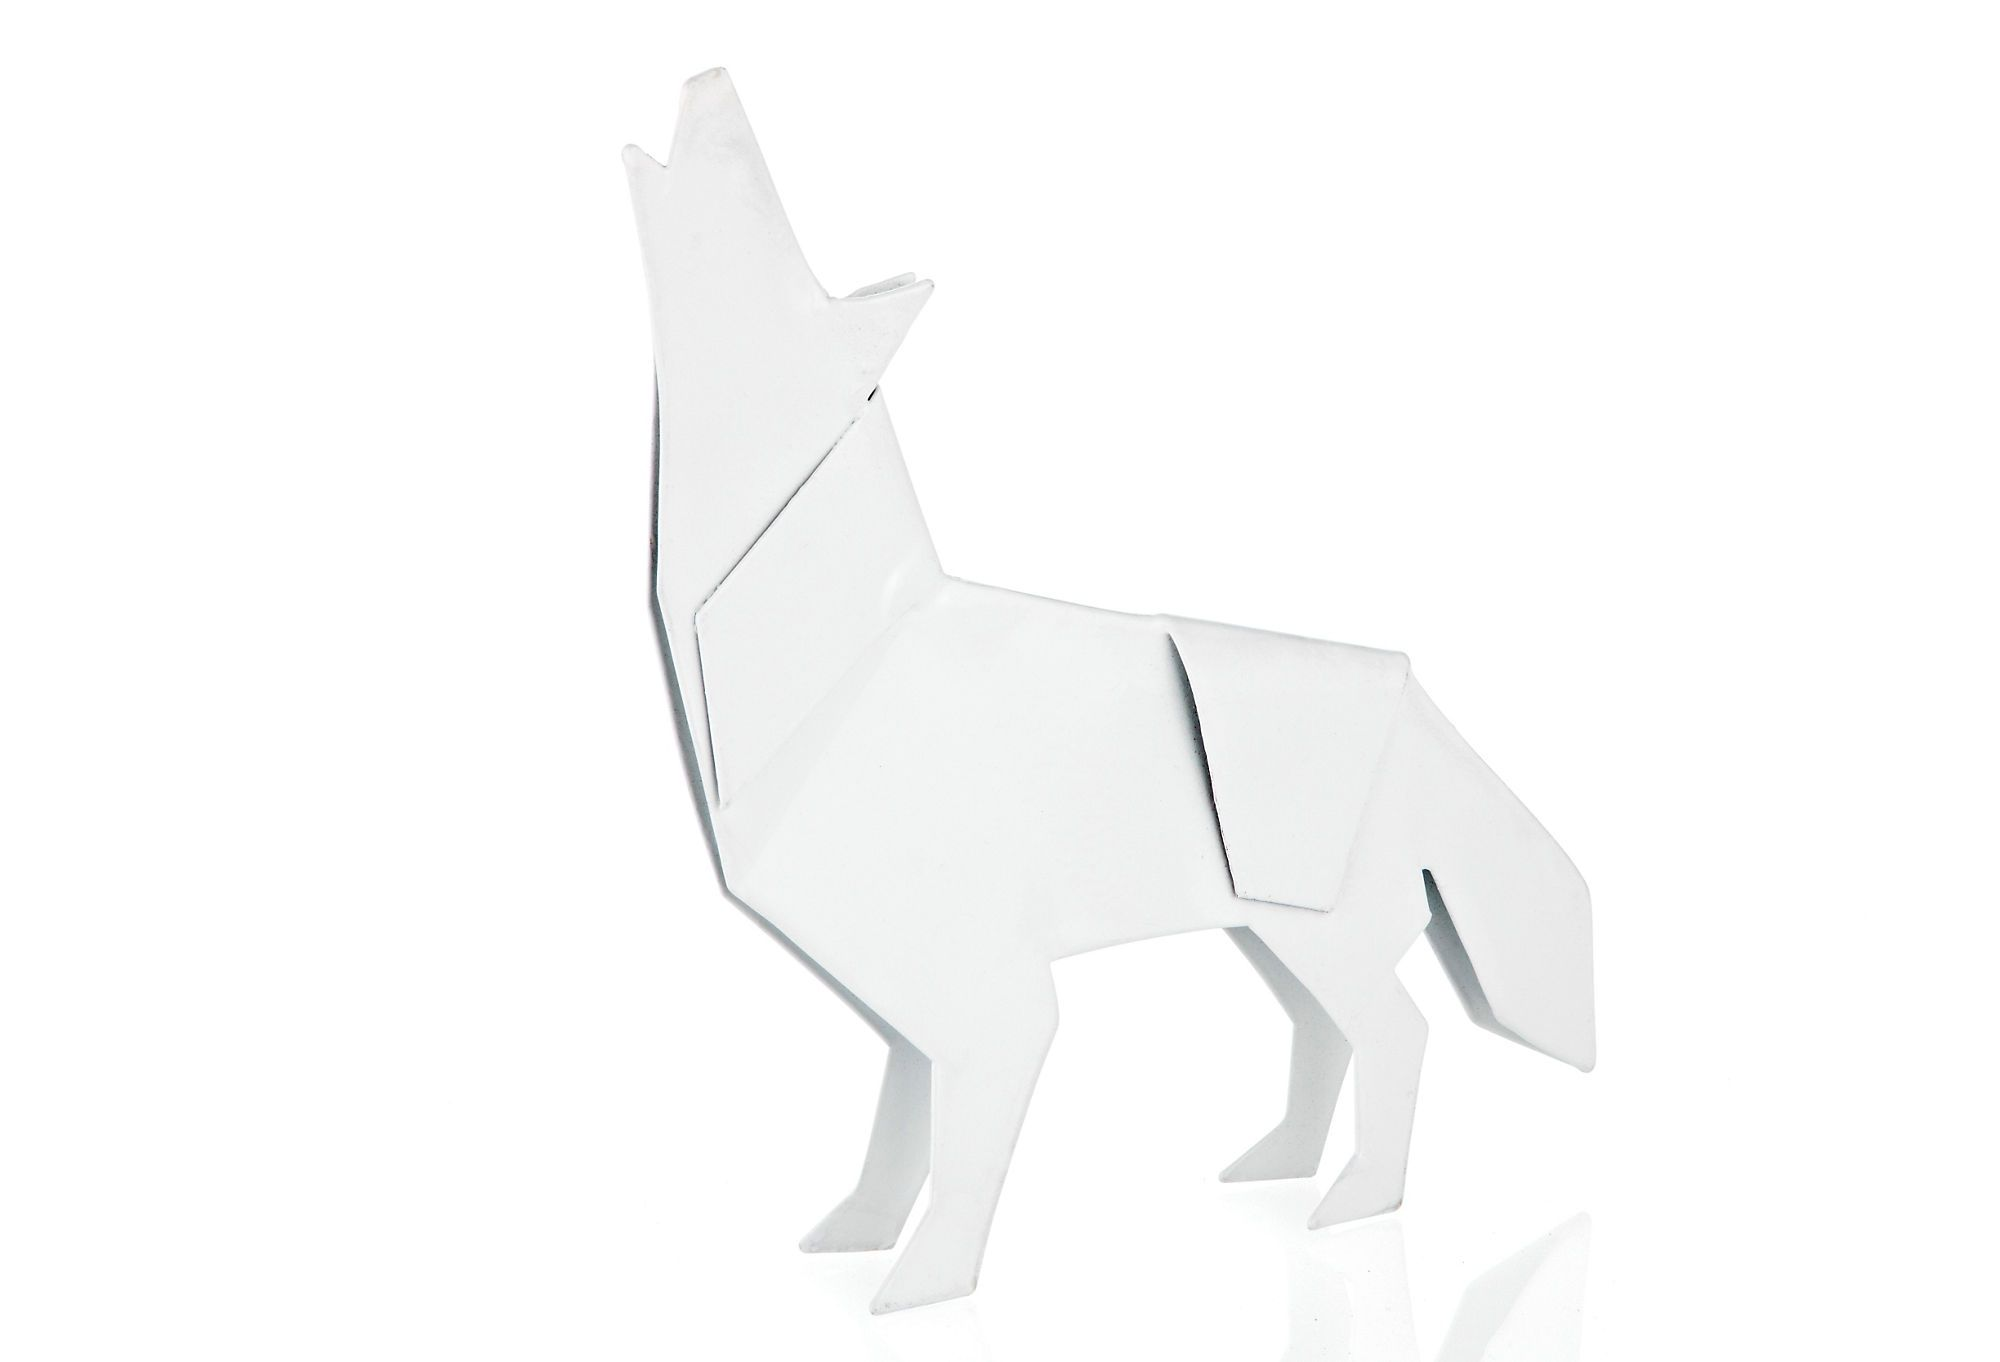 Origami Wolf Instructions Diagram First Robotics Wiring One Kings Lane Objets Objet Accents